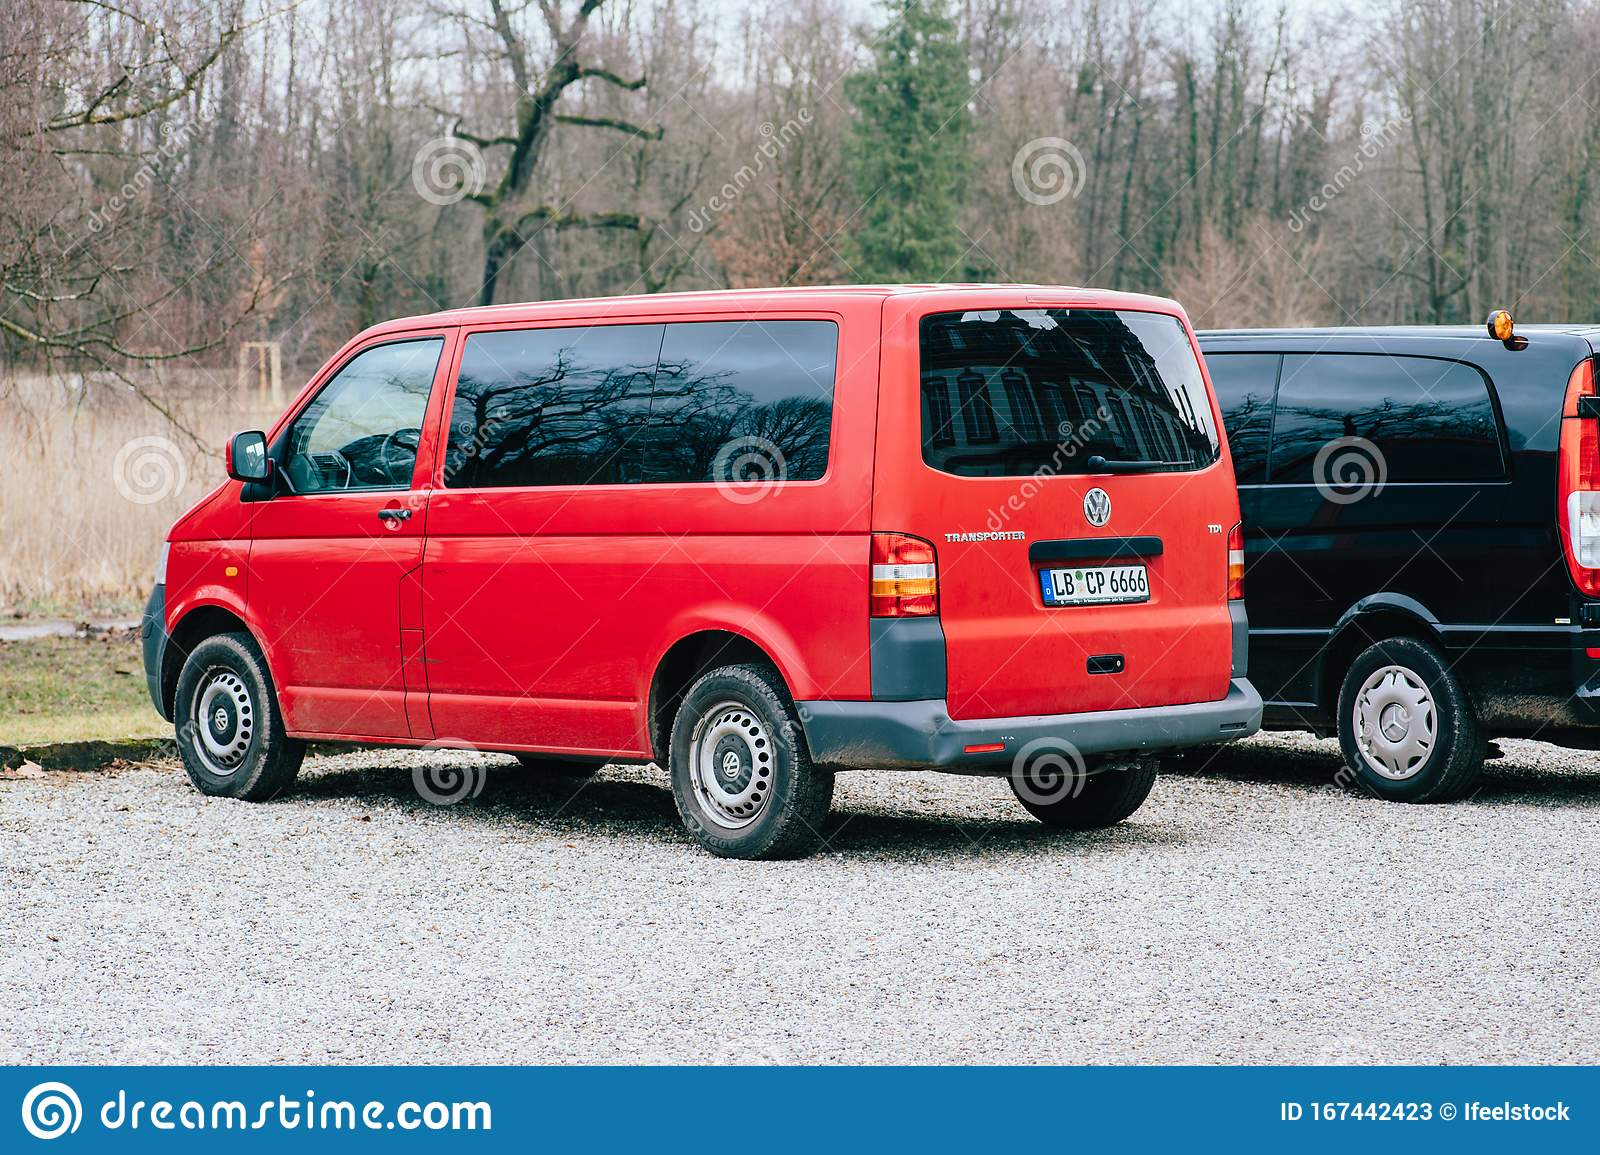 Side Rear View Of Two Vans A Volkswagen Transporter Red And A Mercedes Benz Viano Car Editorial Stock Photo Image Of Outdoor Truck 167442423